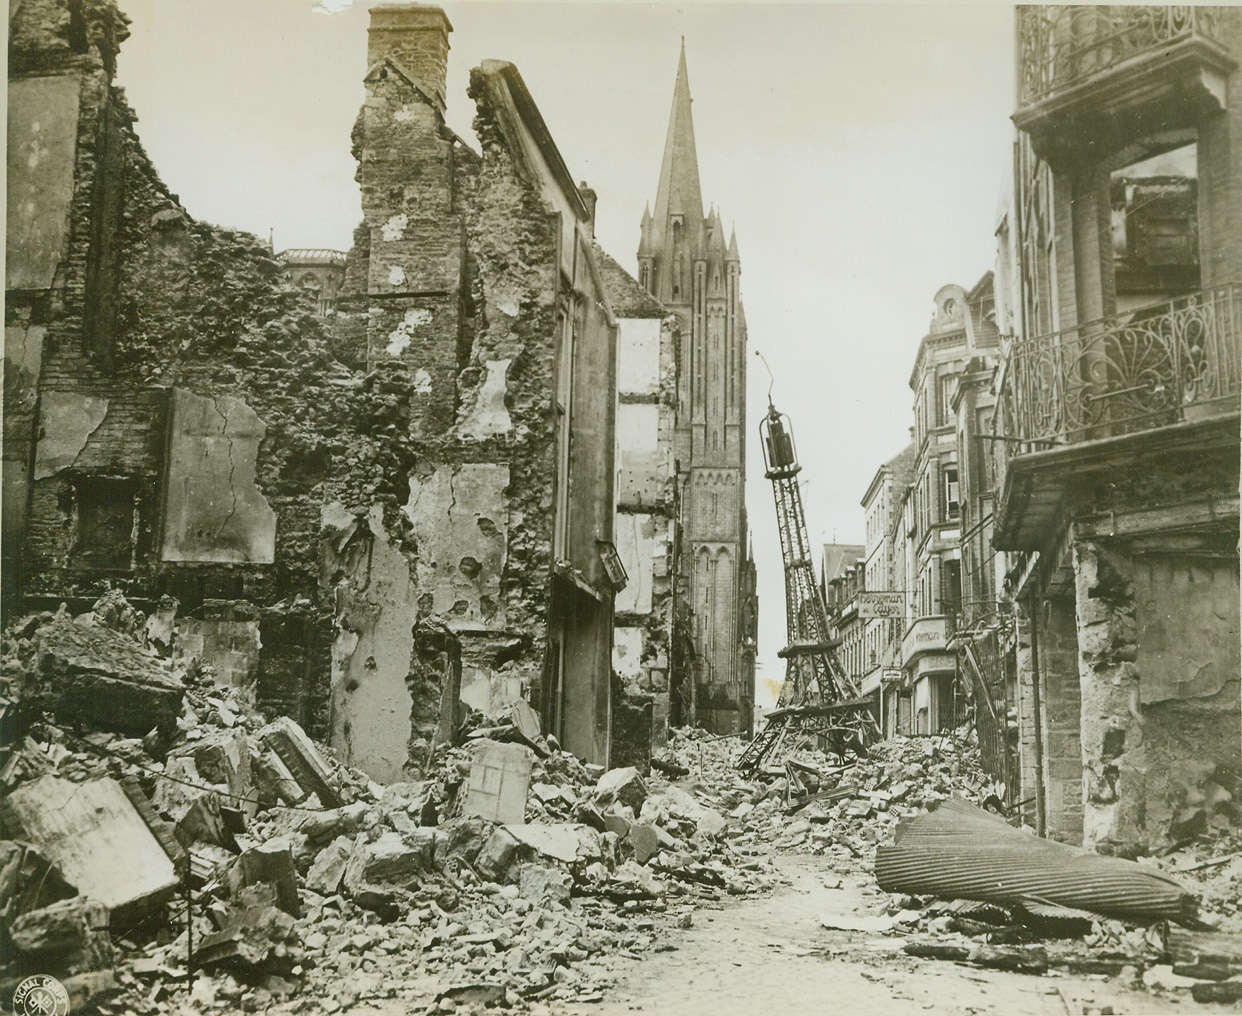 Miniature Eiffel Tower Amid Wreckage, 8/3/1944. France—Flanked by war-torn buildings, a small replica of the famous Eiffel Tower rests atop a heap of rubble in a Coutances Street. In the center, background, is the Cathedral, seemingly undamanged. Credit: U.S. Army photo from ACME;